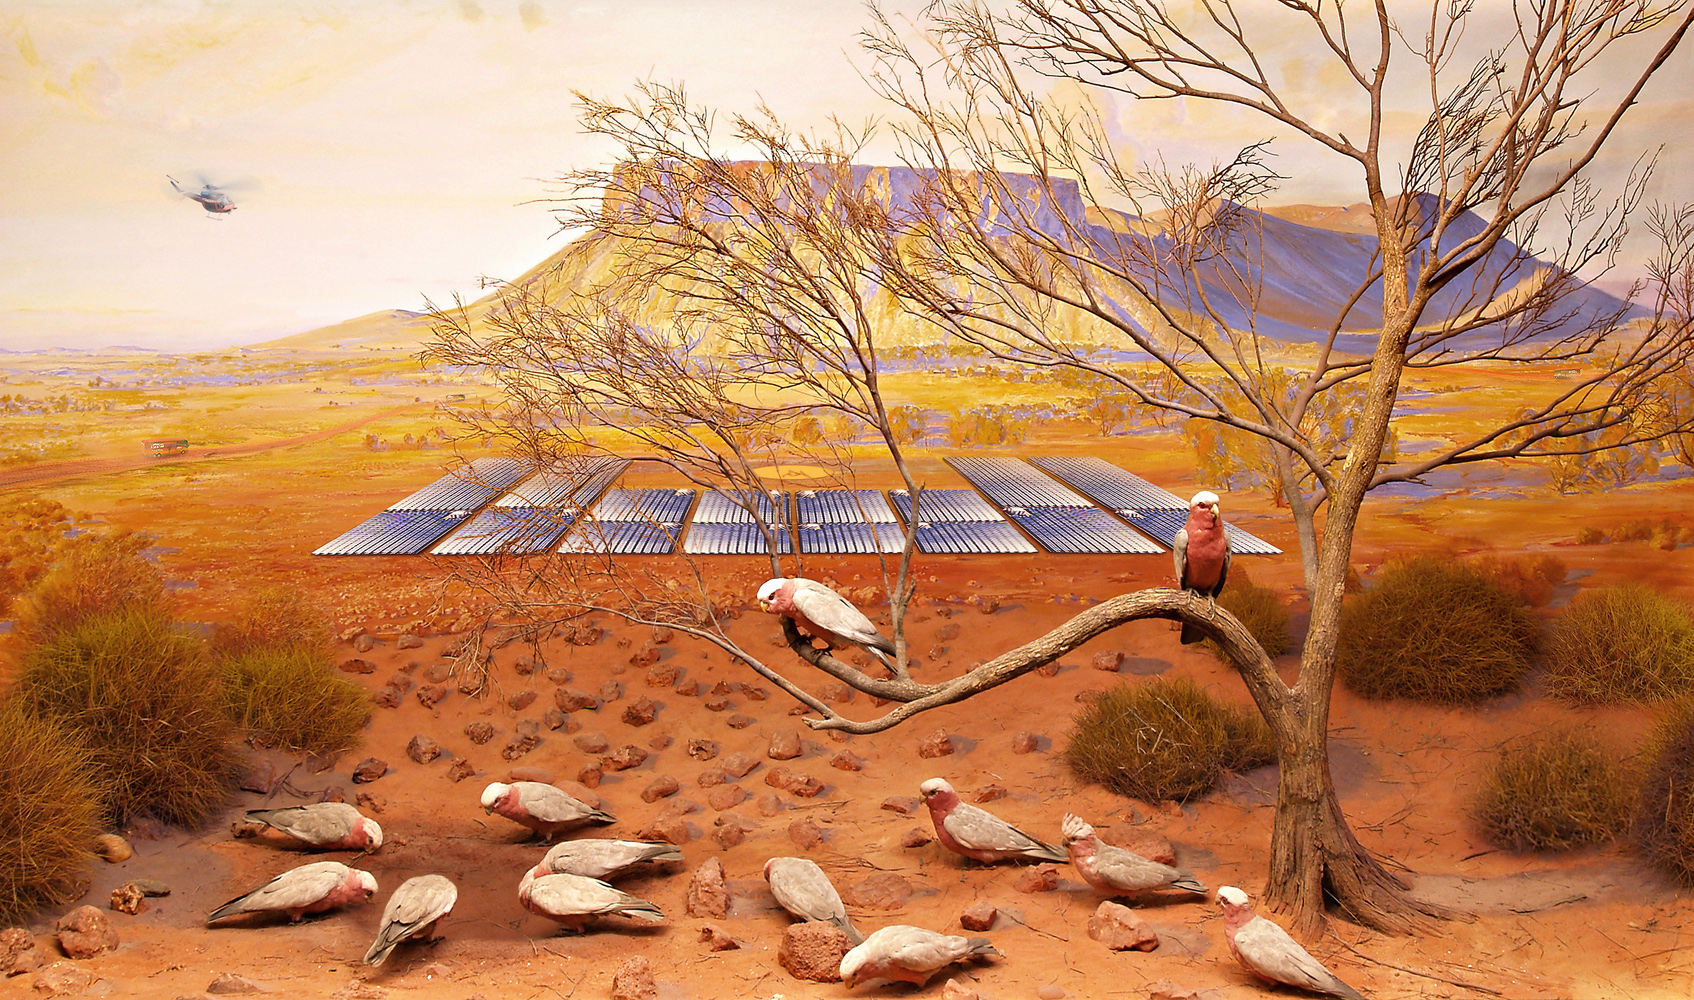 ANNE ZAHALKA   Galah, Mt Connor near Uluru, South Australia  2019 Archival pigment ink on rag paper 80 cm x 135 cm Edition of 6  Source: South Australia Museum